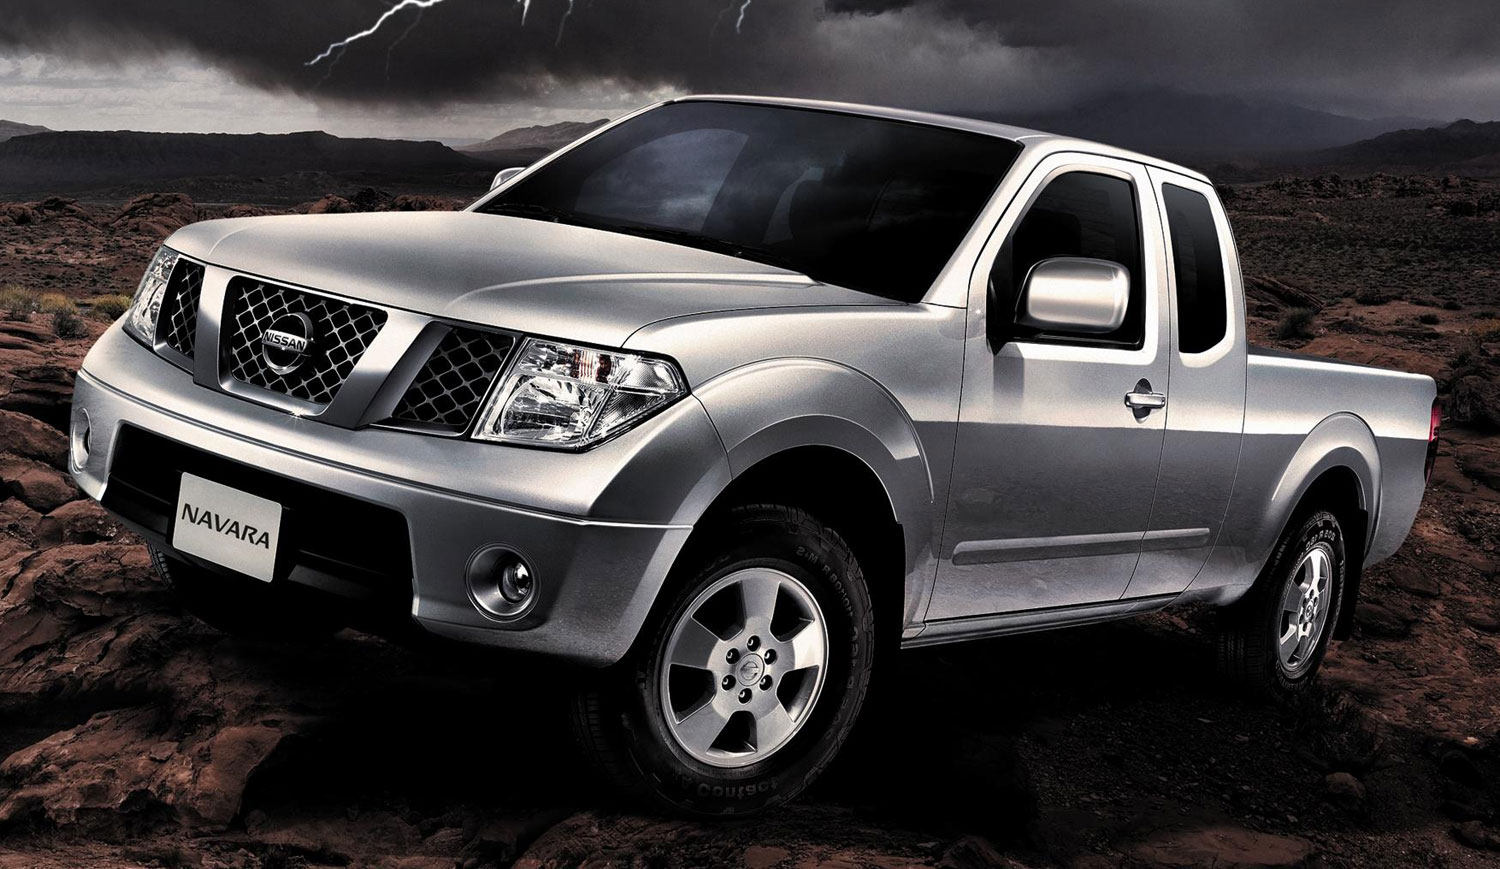 tan chong introduces the nissan navara 4x4 king cab. Black Bedroom Furniture Sets. Home Design Ideas